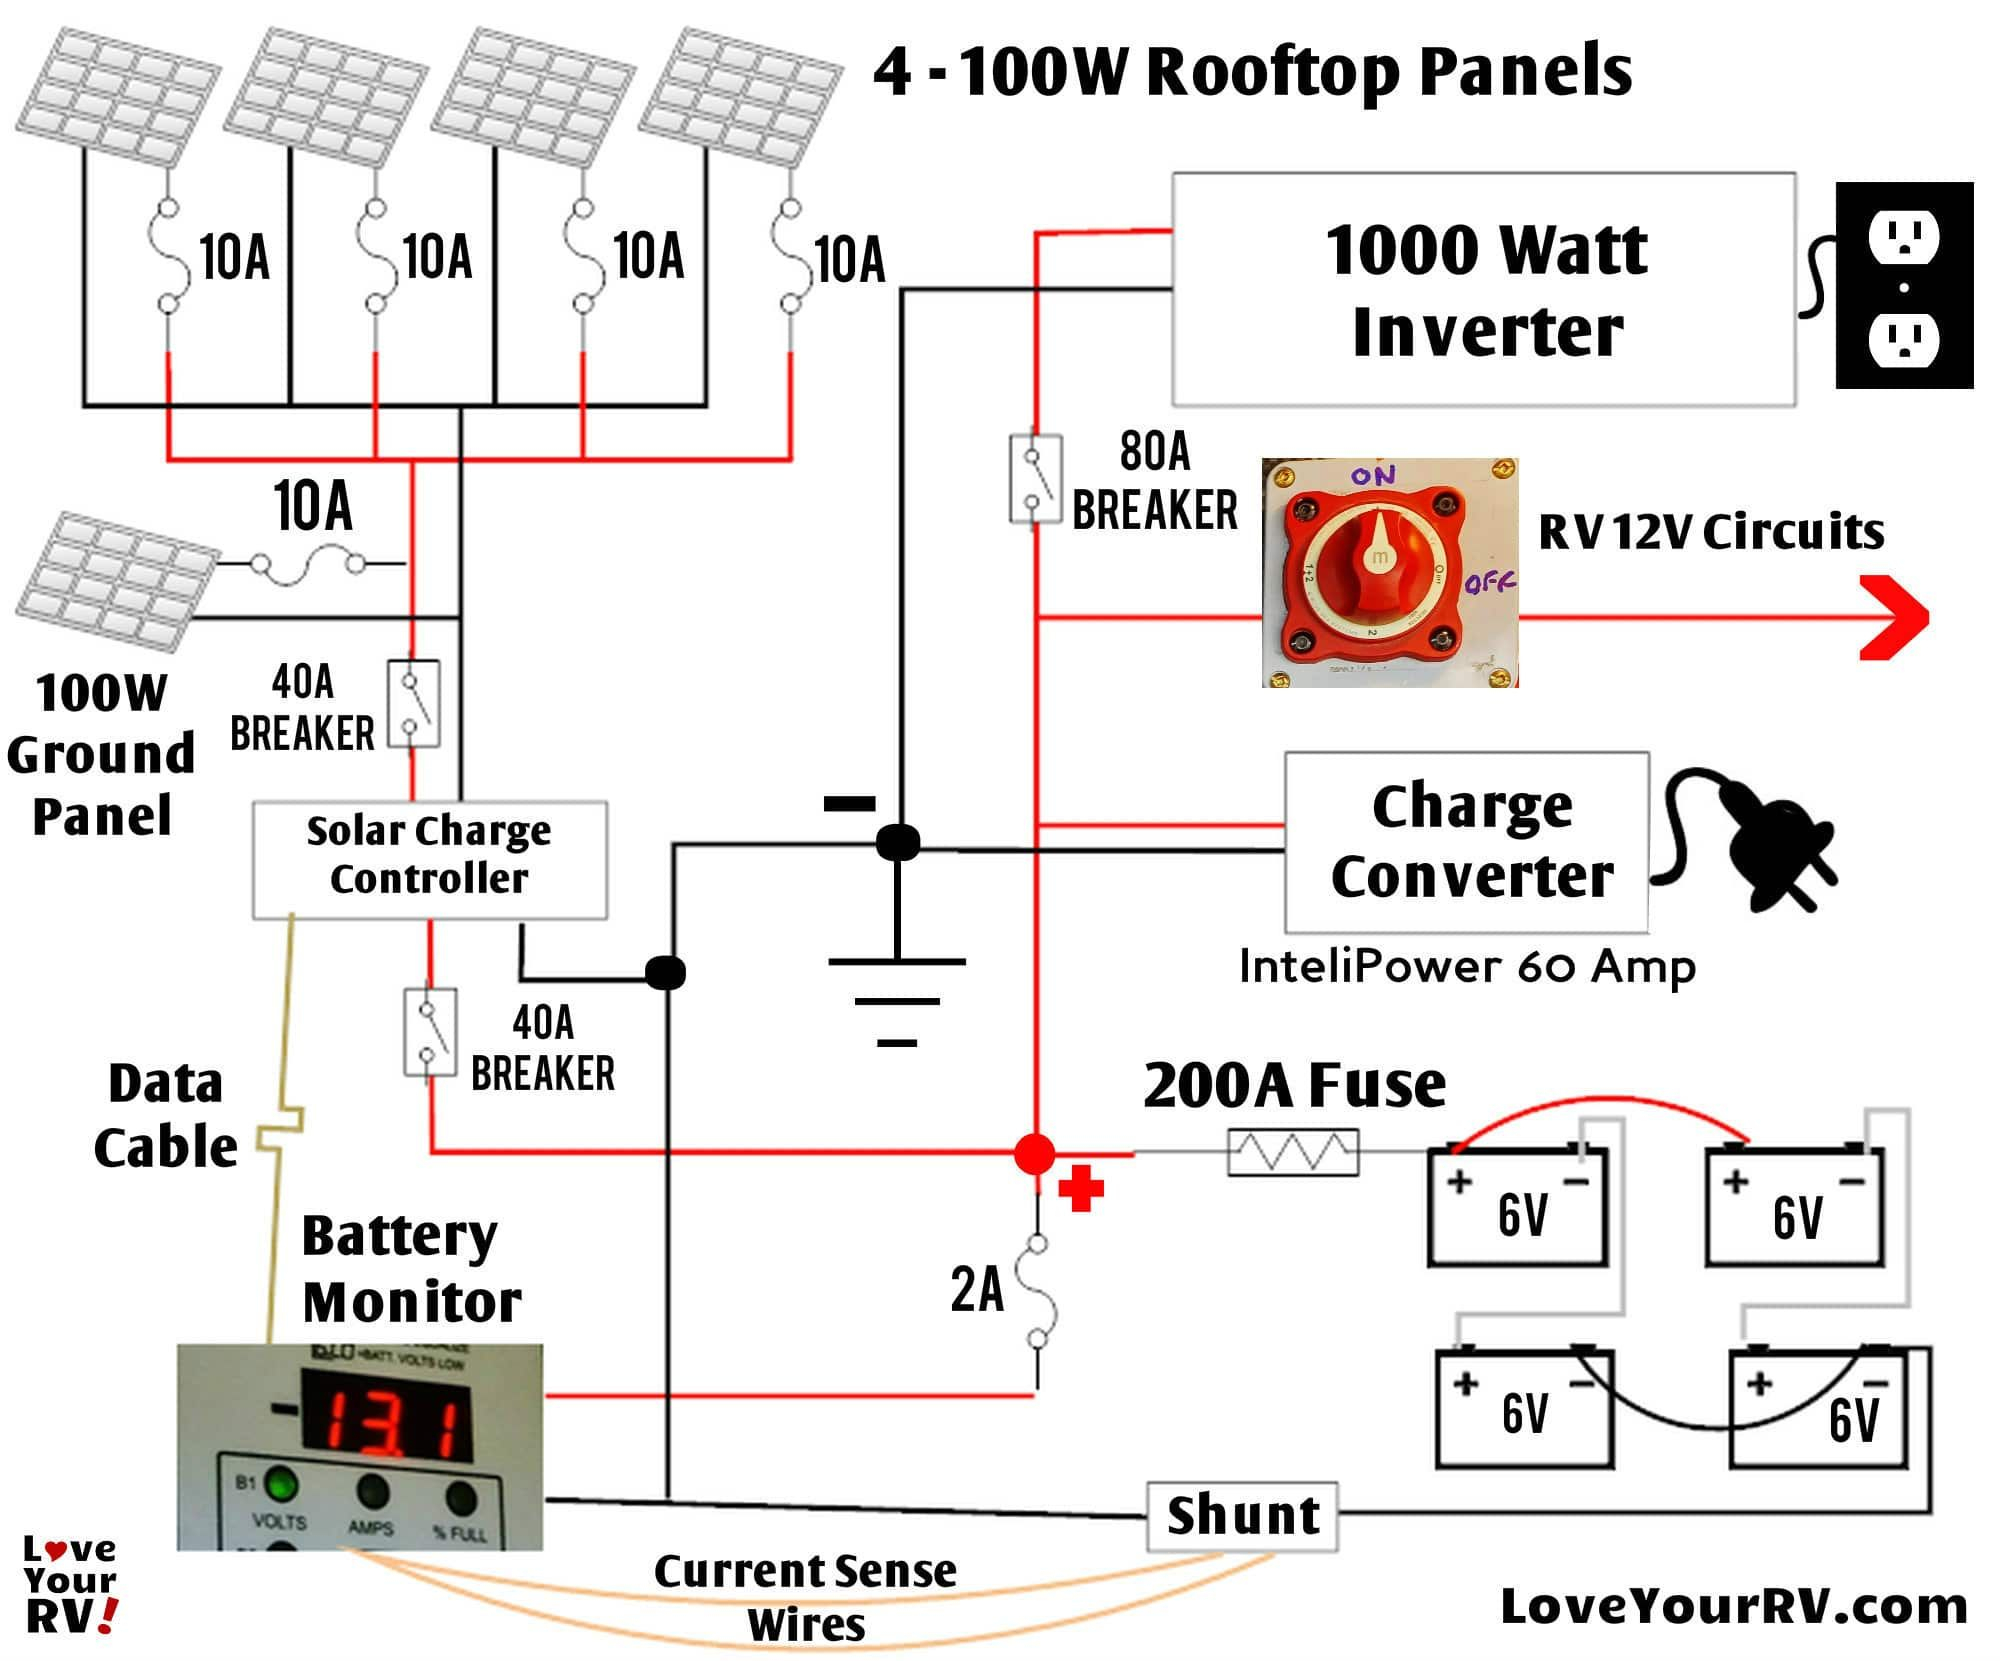 solar panel wiring diagram Download-I have our off grid RV power system plete so I m putting out a detailed overview of the system ponents used and how much they cost Luckily for me 17-t